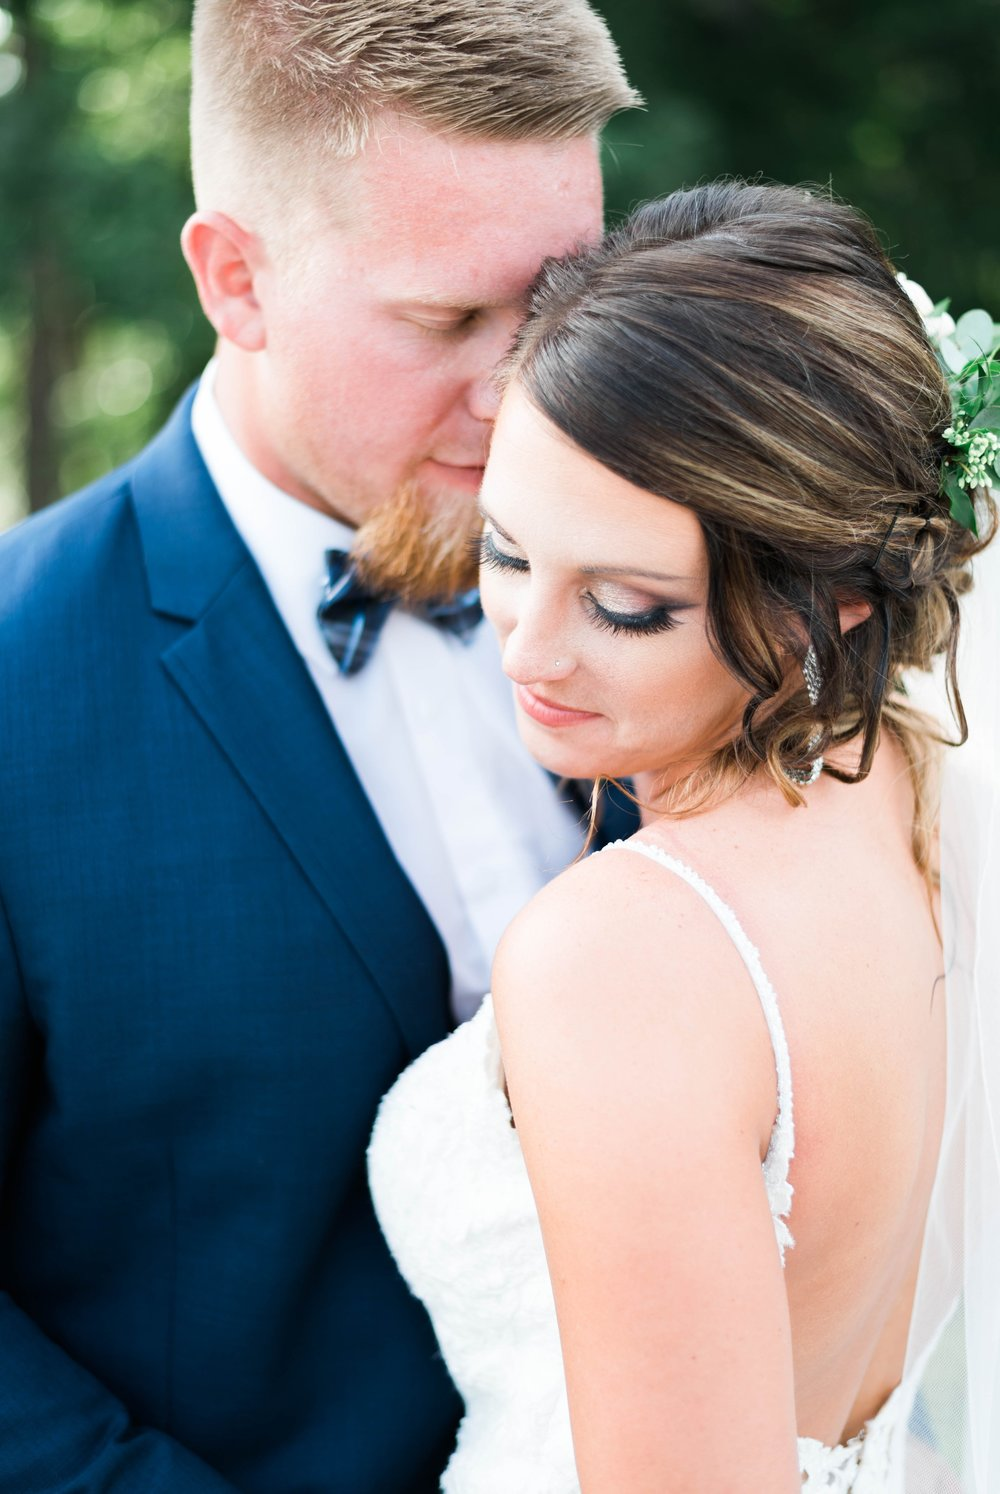 atkinson farms_VirginiaWeddingPhotographer_LynchburgWeddingPhotographer_DylanandLauren 25.jpg